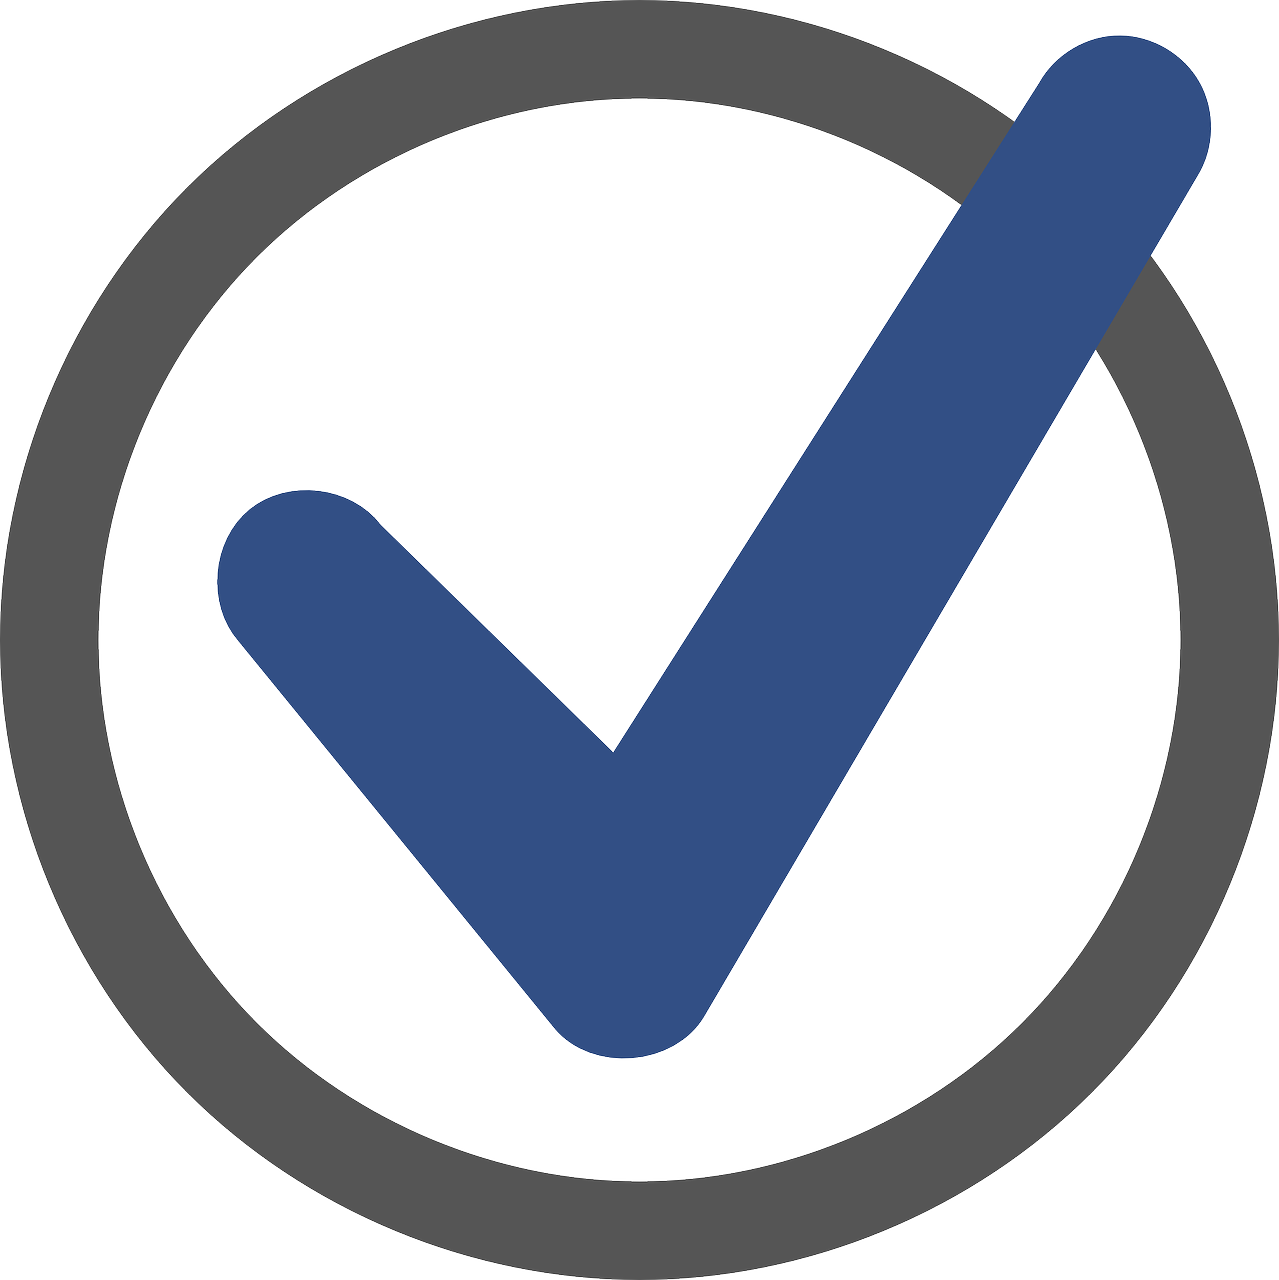 Ok Icon PNG Image.